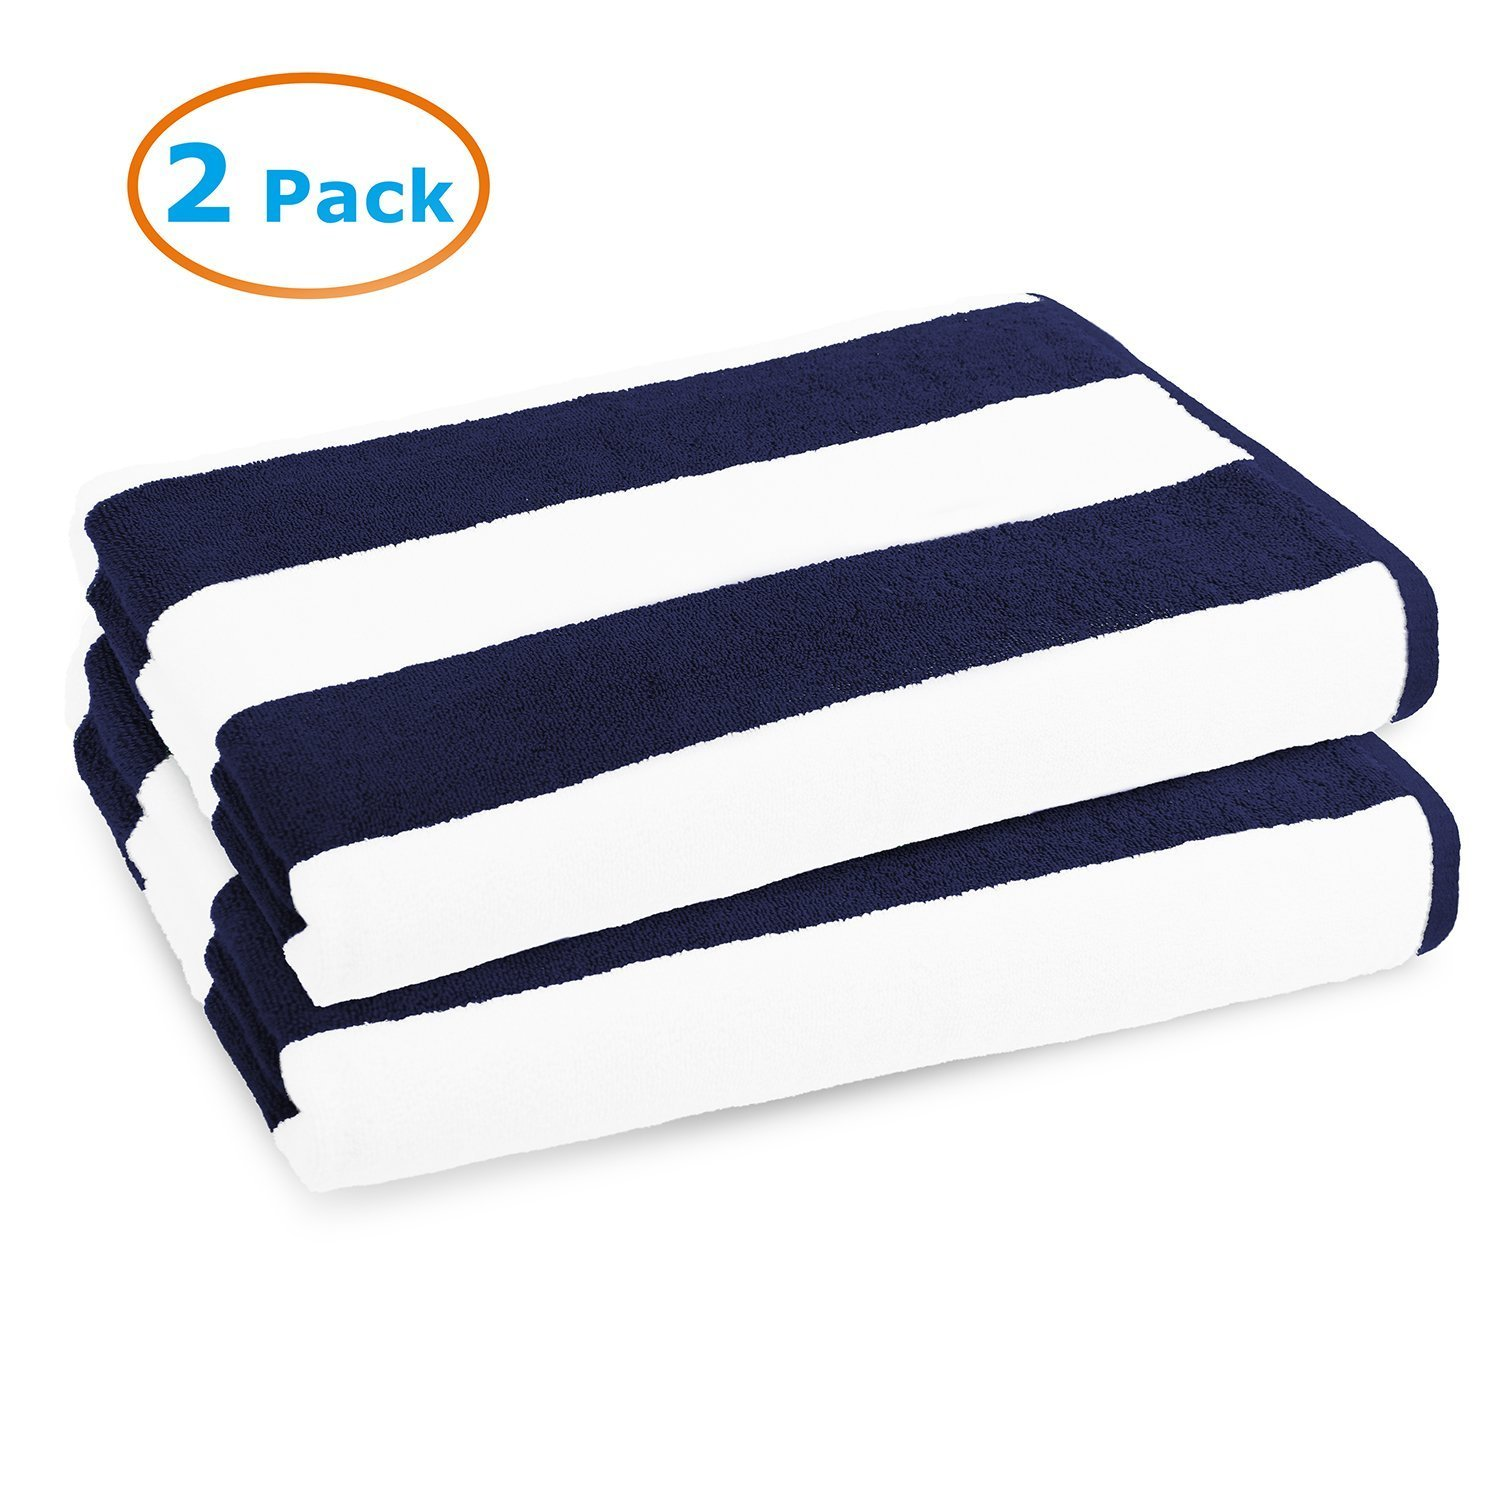 2 Pack Navy Blue Cabana Stripe Large Bath Towels Set, 100% Turkish Cotton Towels for Bath Beach Pool Gym Hotel Spa Chair Lounge Cover, Soft and Absorbent (Oversized Large 40 by 70 inches) (Set of 2)